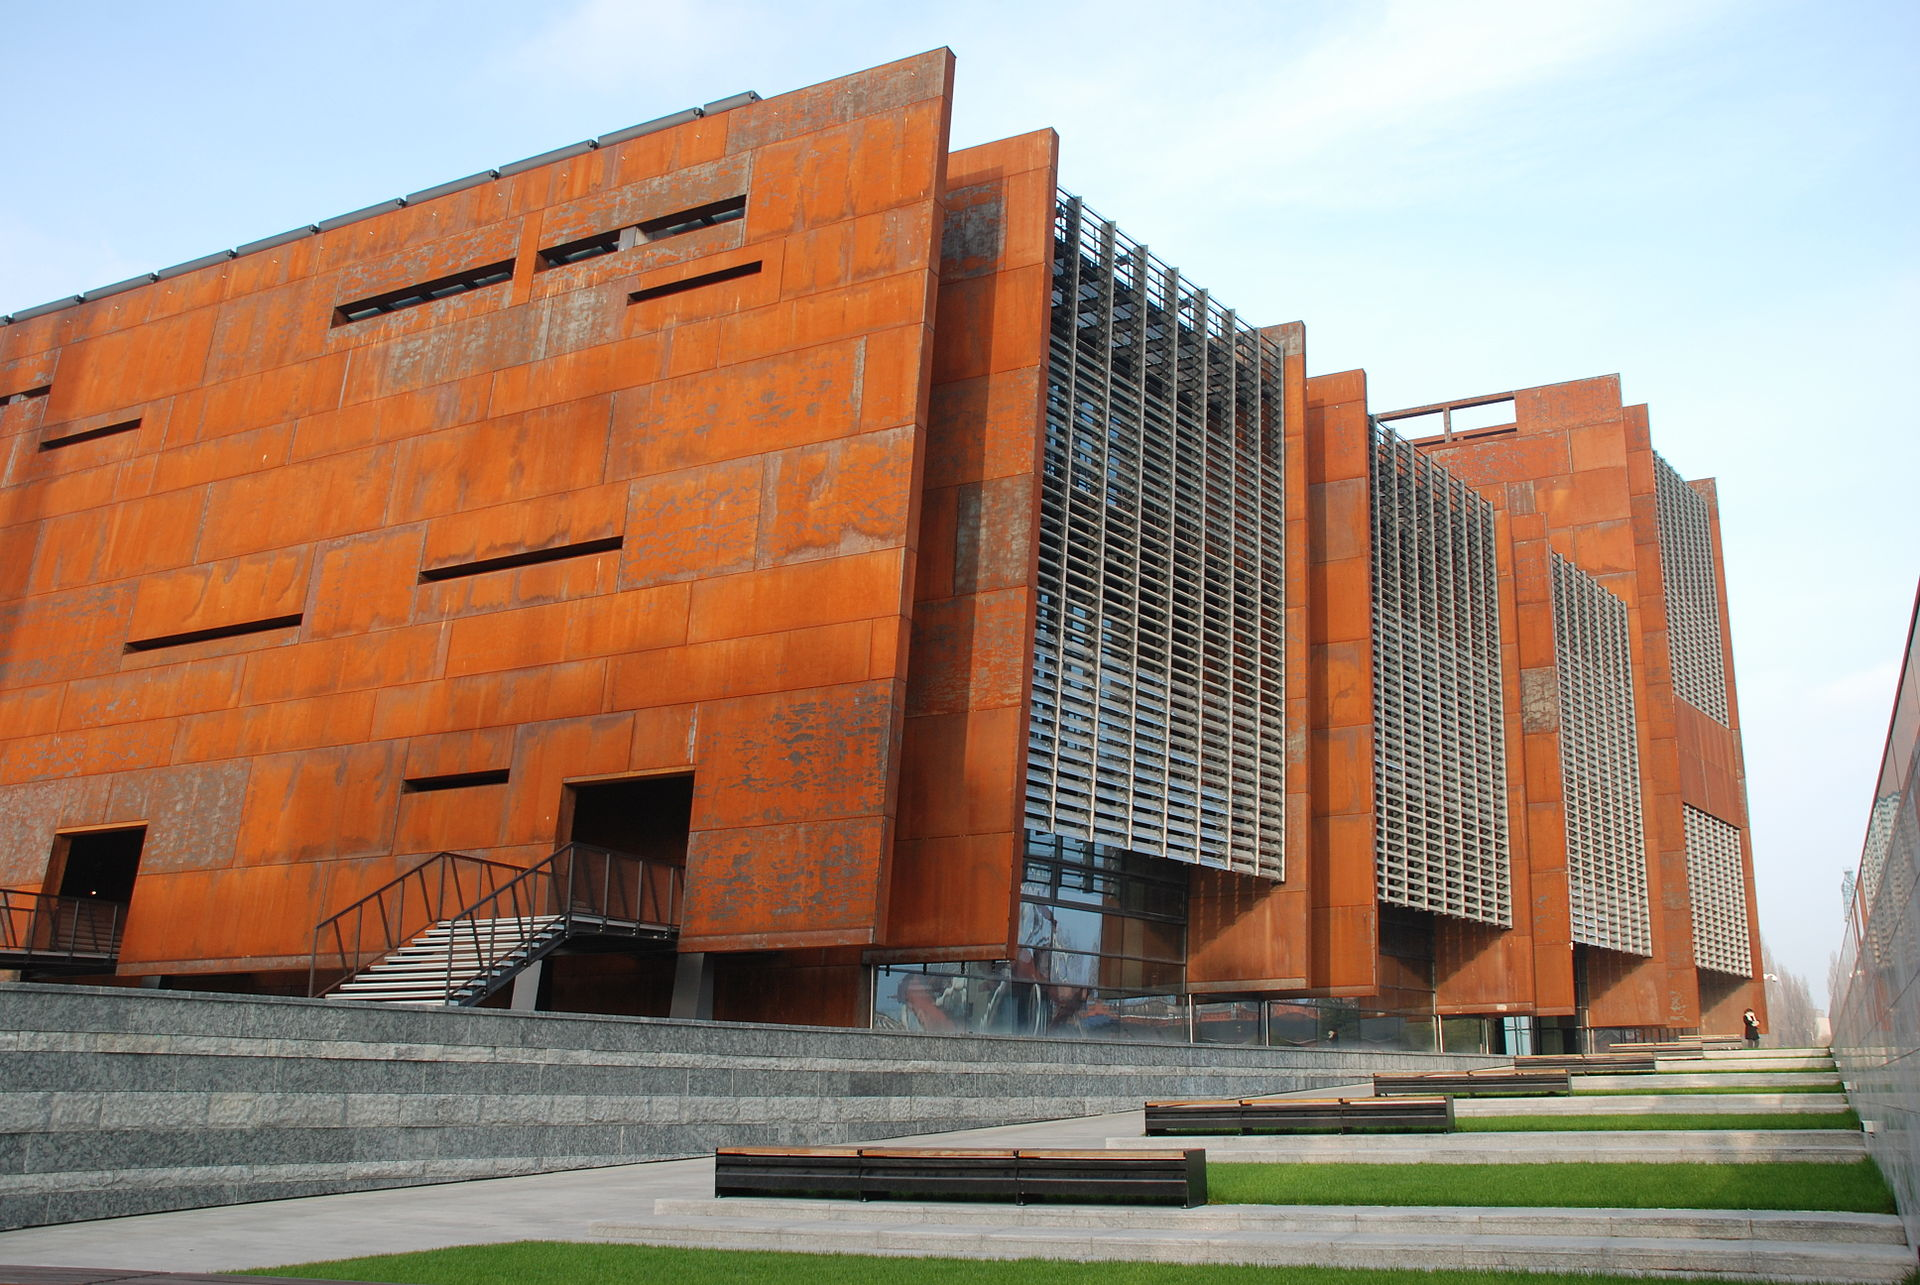 European Solidarity Centre in Gdansk